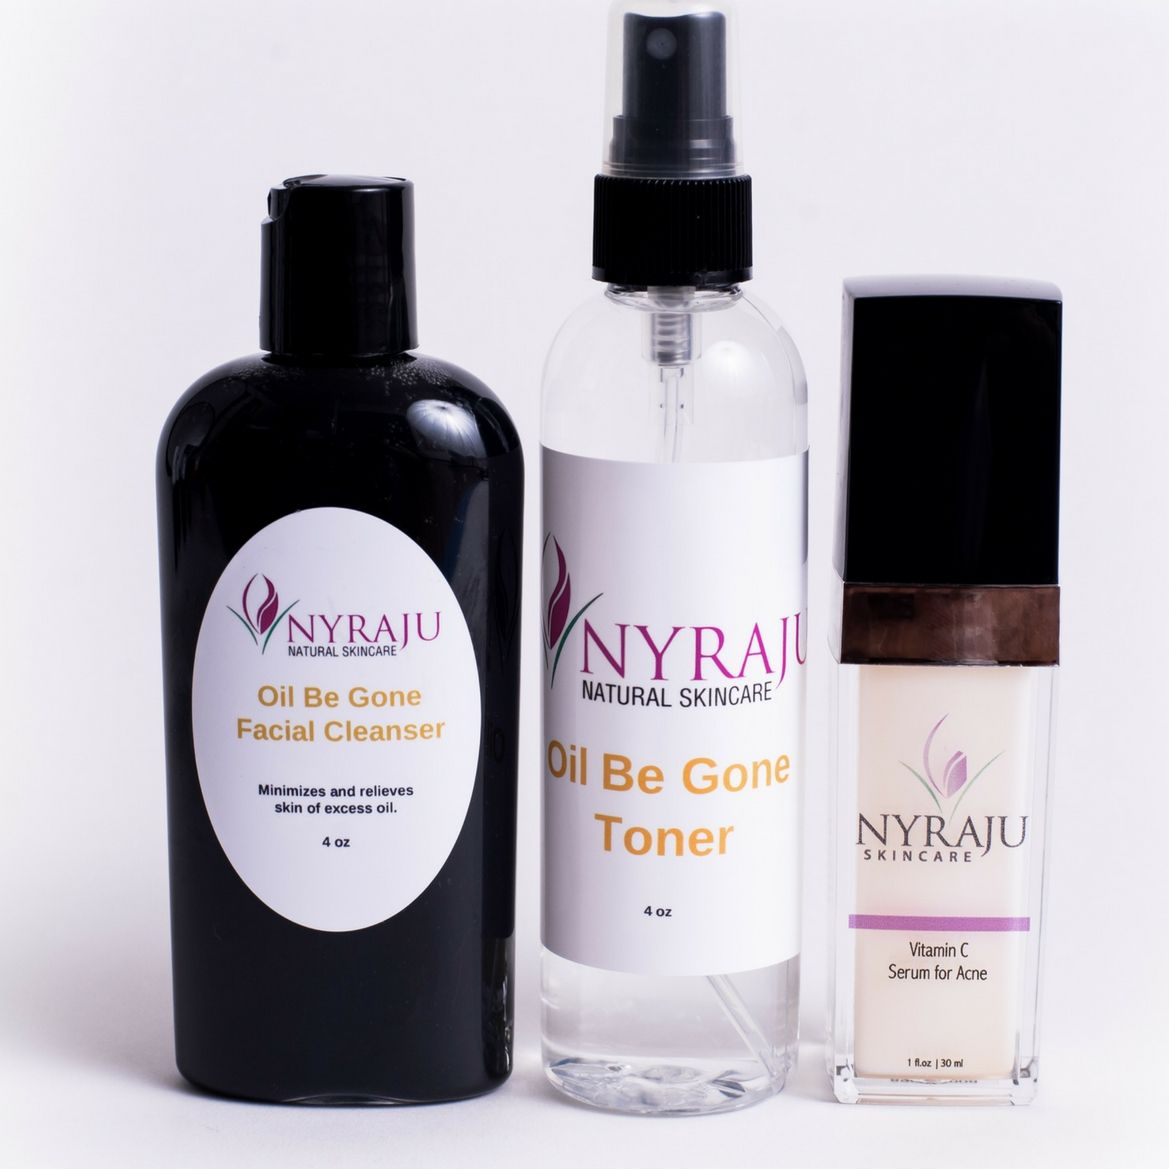 Natural Black Skin Care Products Skin Care Natural Black Skin Care Black Skin Care